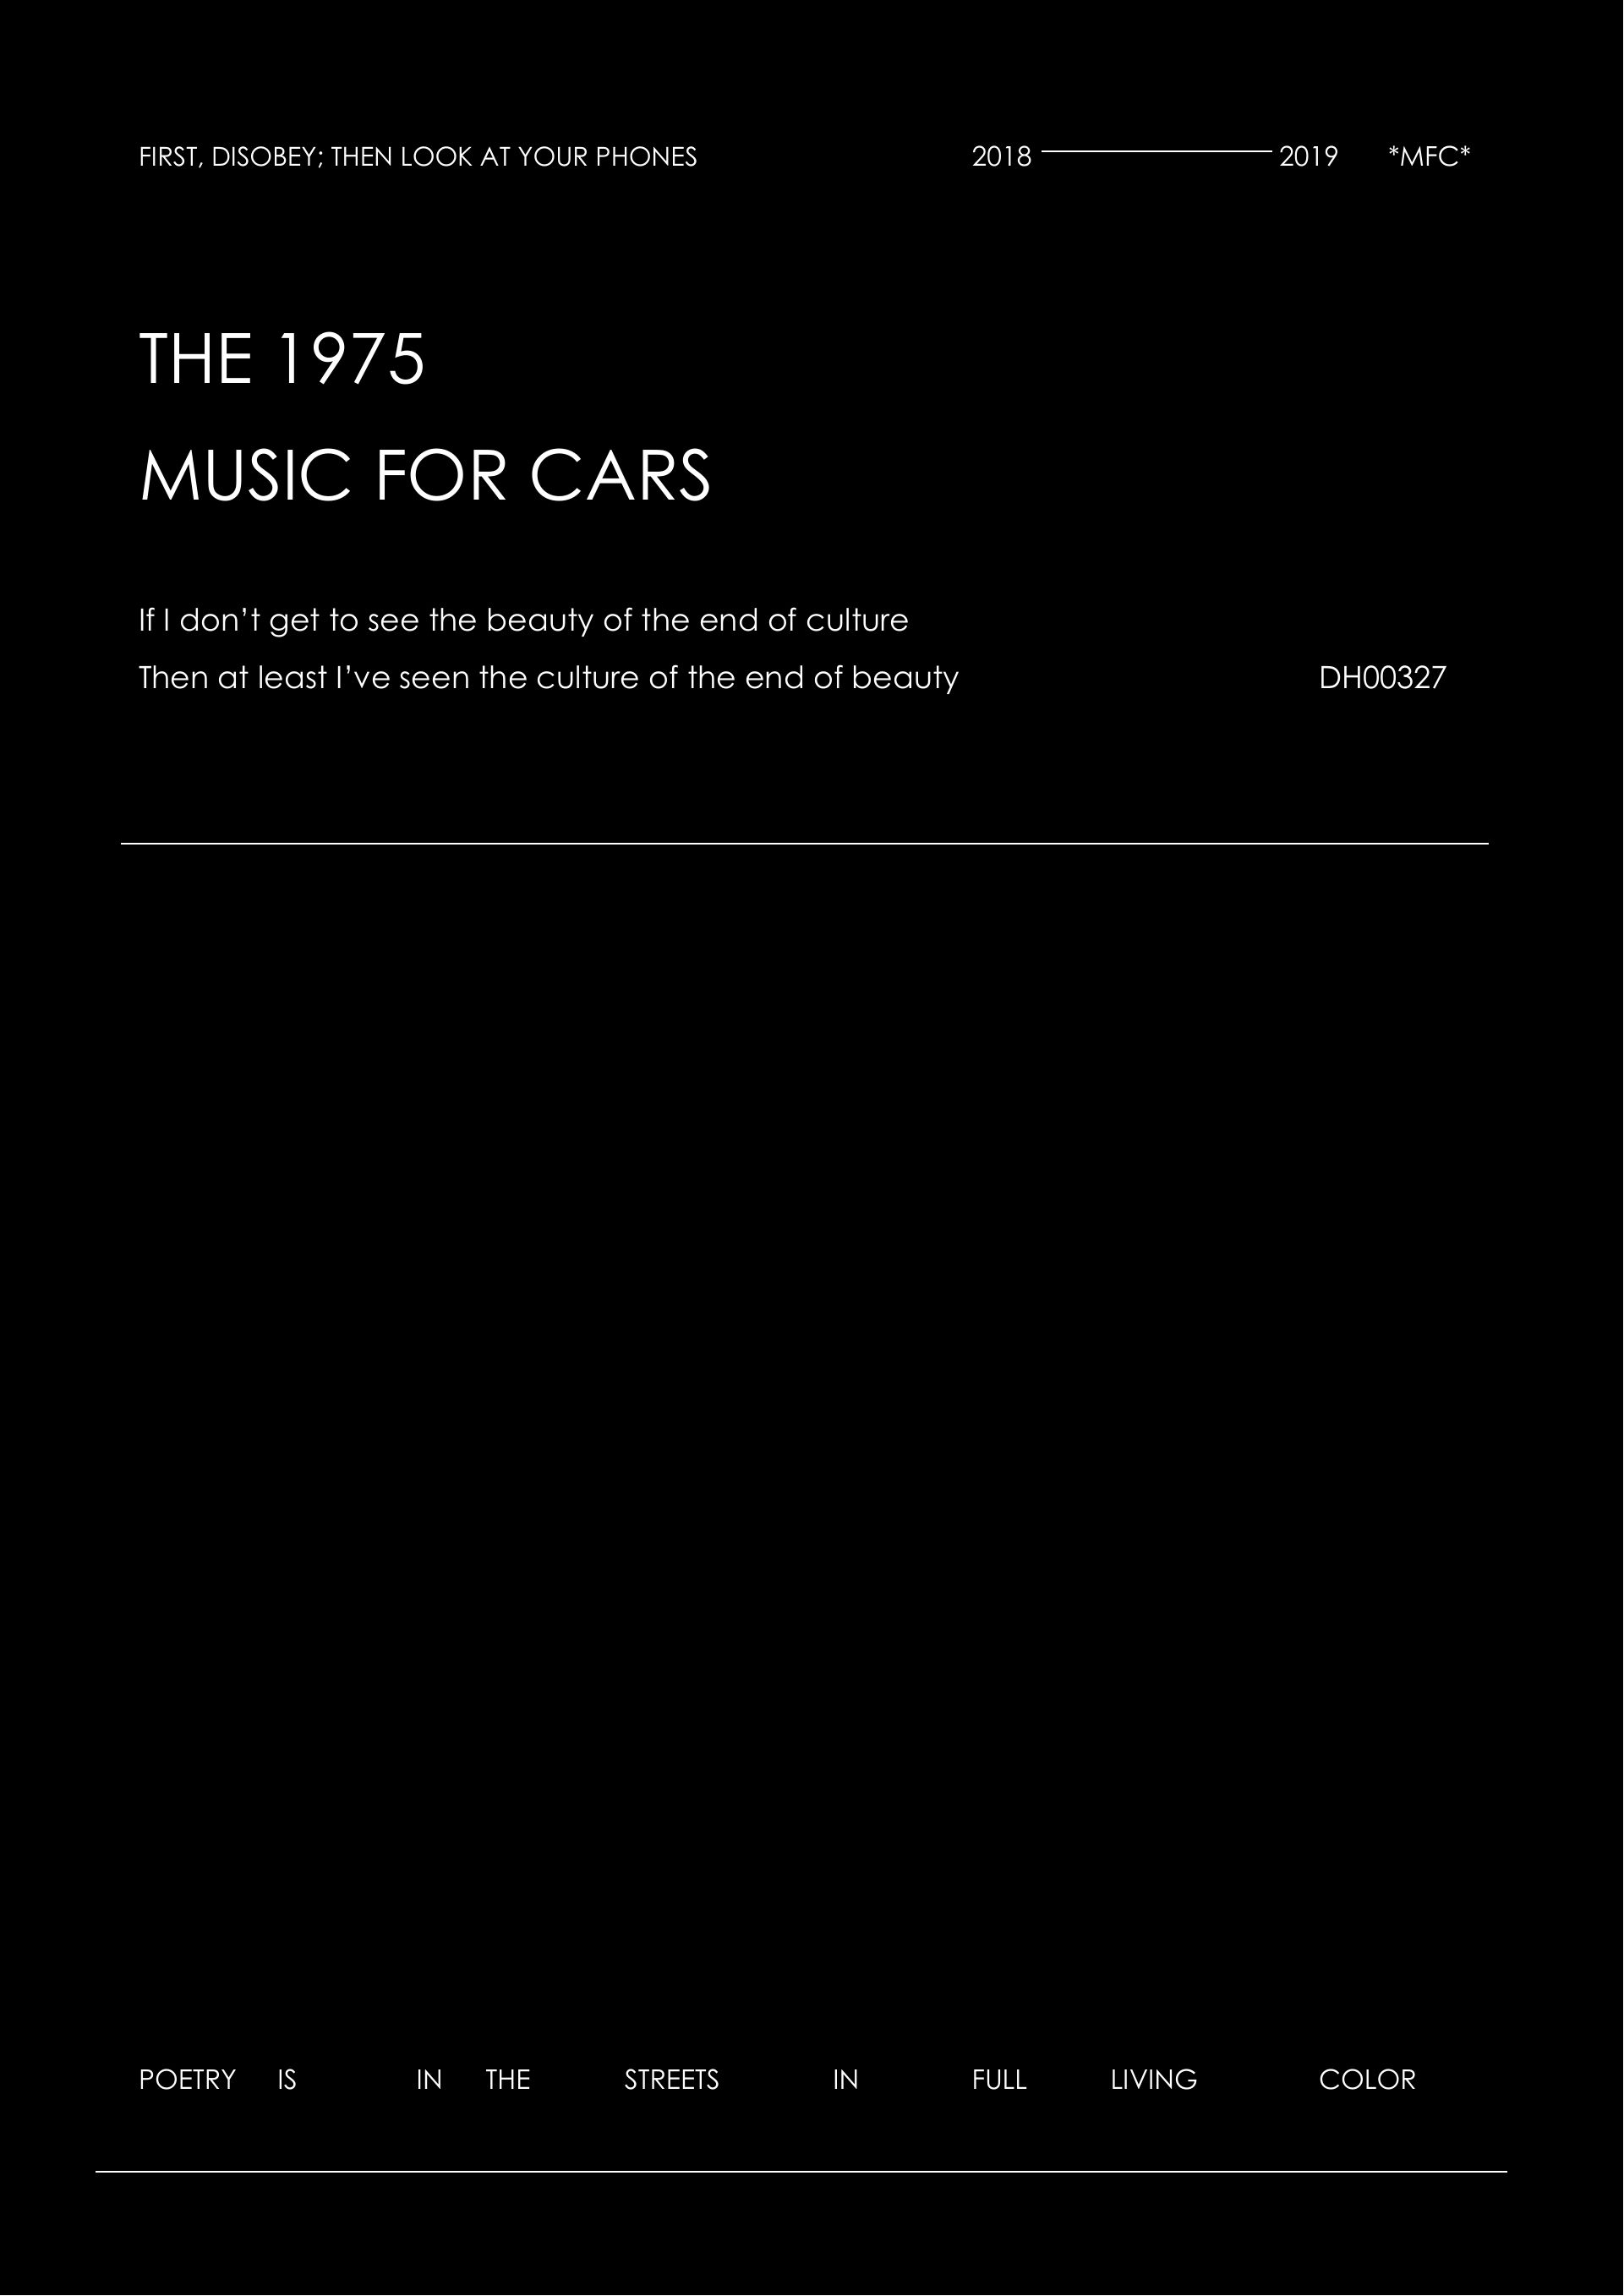 poster i made for 'Music For Cars 2018' by the 1975. The